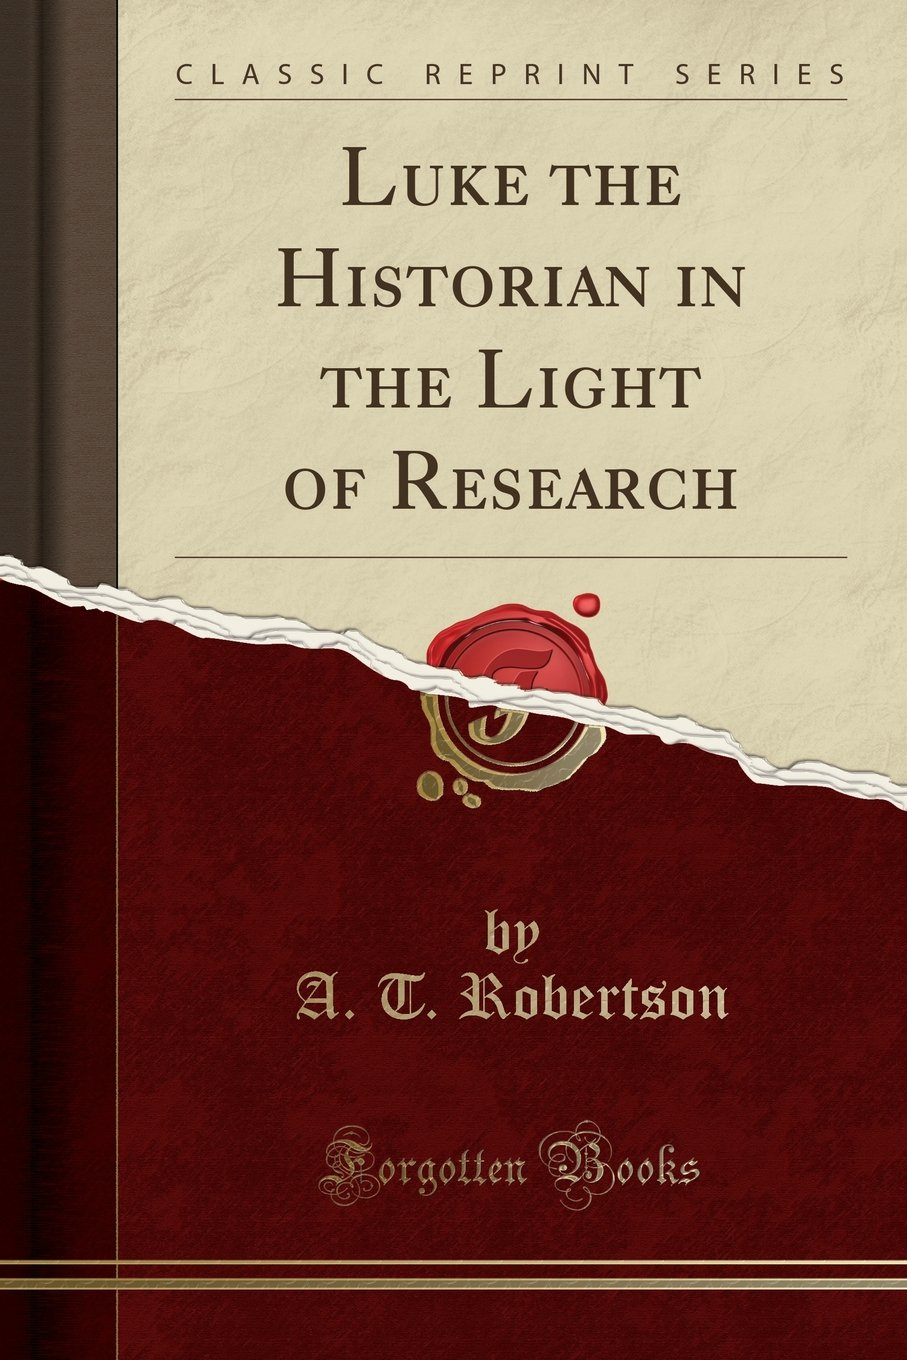 Luke the Historian in the Light of Research (Classic Reprint) PDF